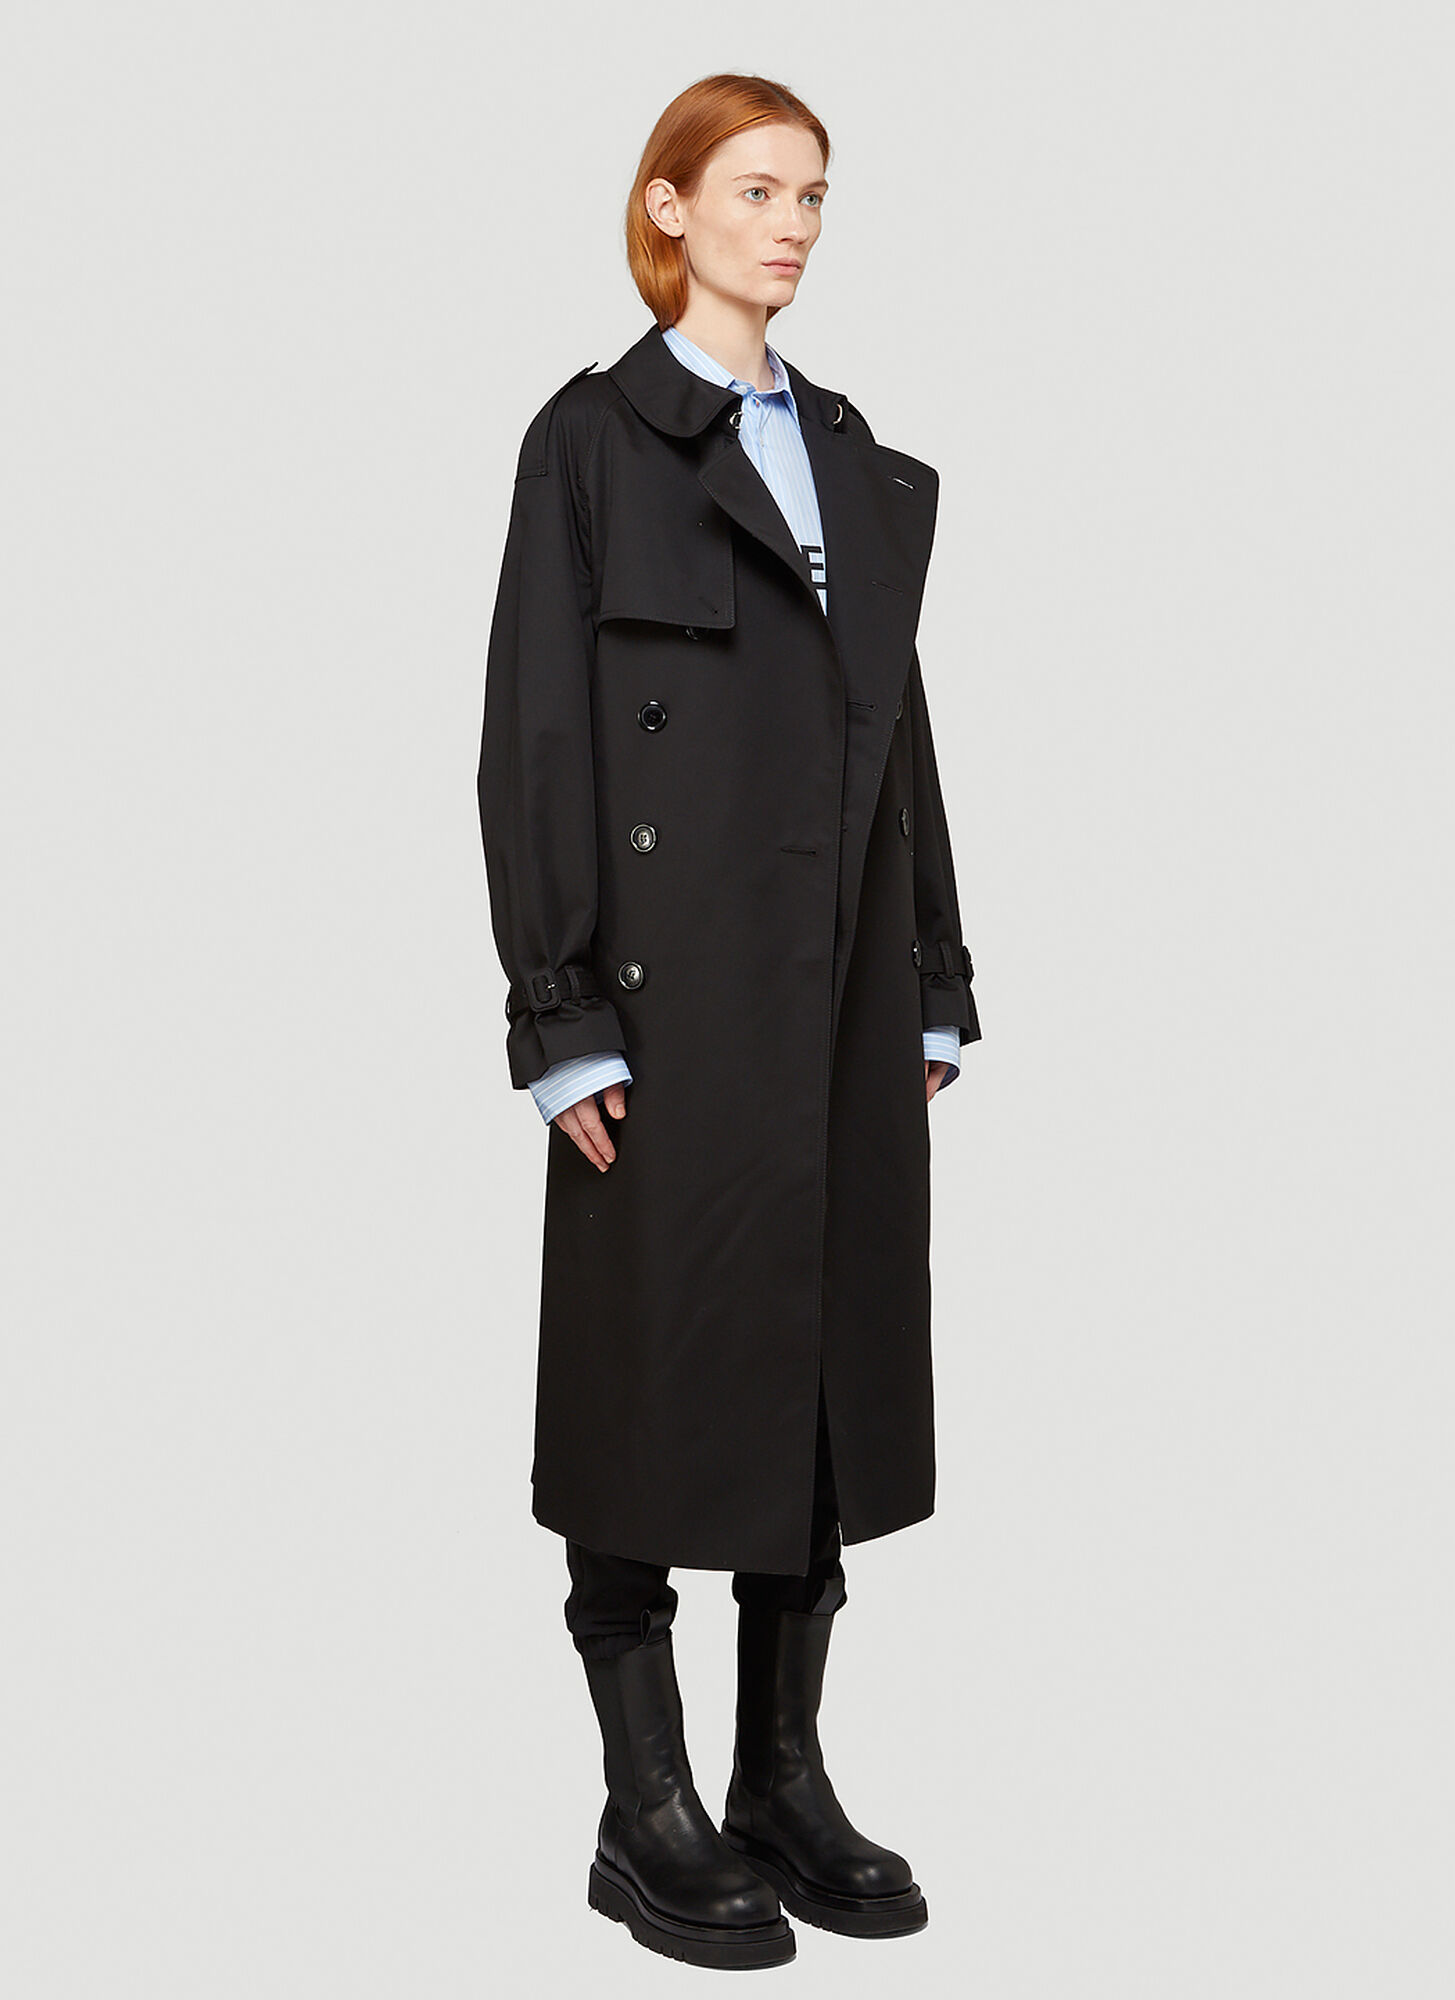 VETEMENTS Logo-Patch Trench Coat in Black | LN-CC female Black 65% Polyester, 35% Cotton. Dry clean.